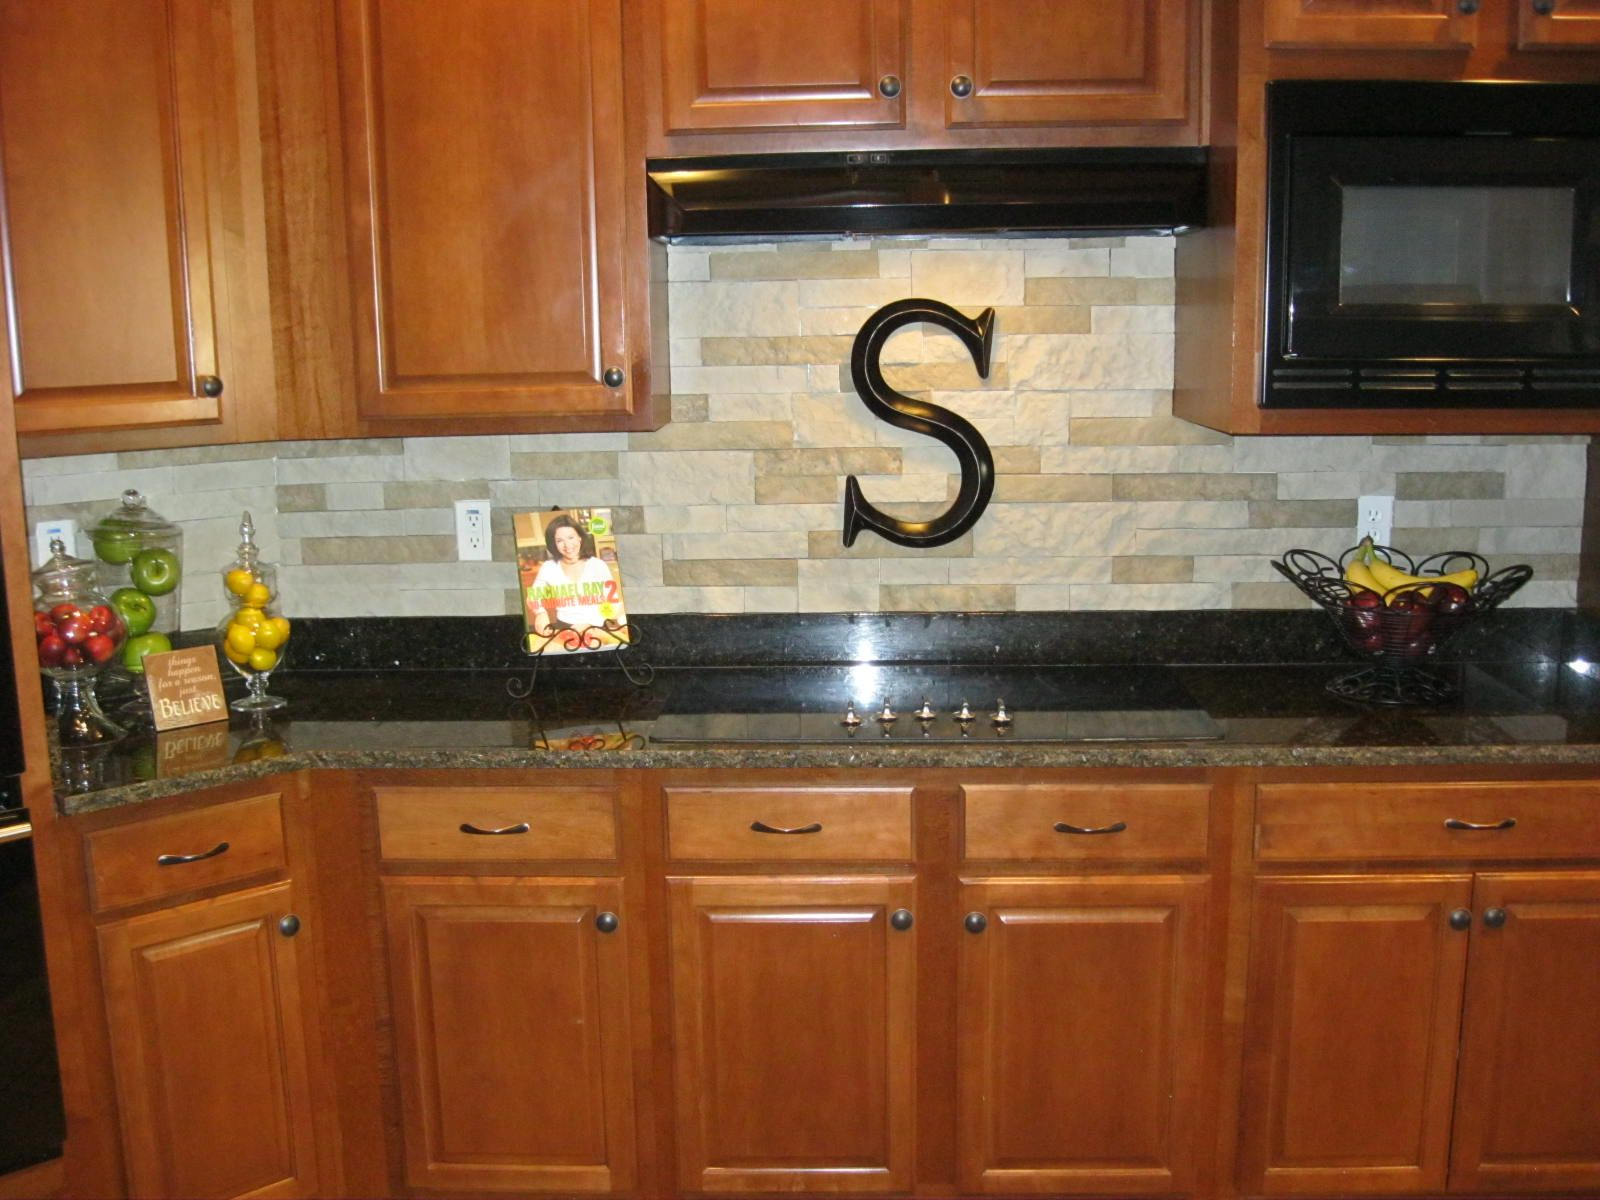 Our new stacked stone backsplash. We used AirStone sold at